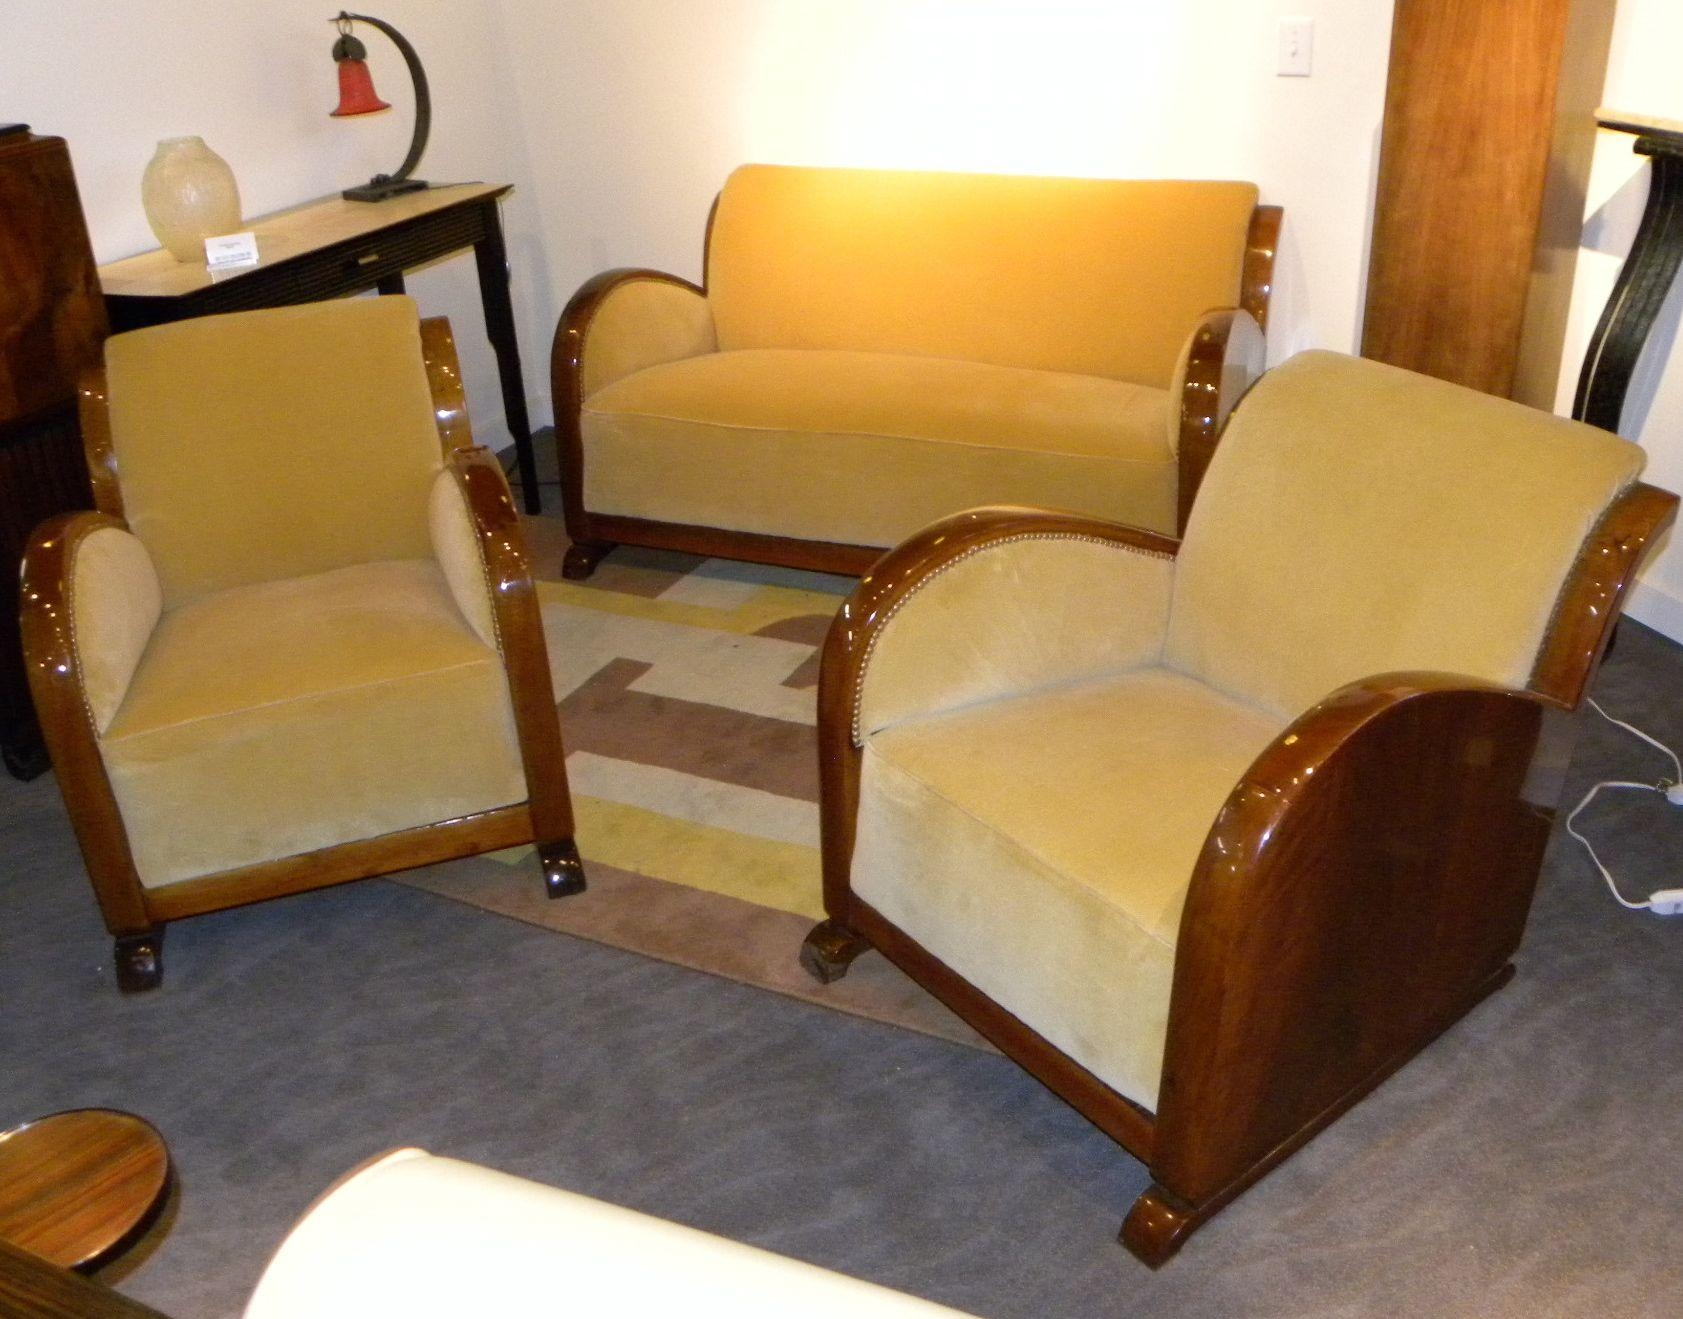 Art Deco Furniture Sold | Seating Items | Art Deco Collection Inside Art Deco Sofa And Chairs (View 2 of 20)